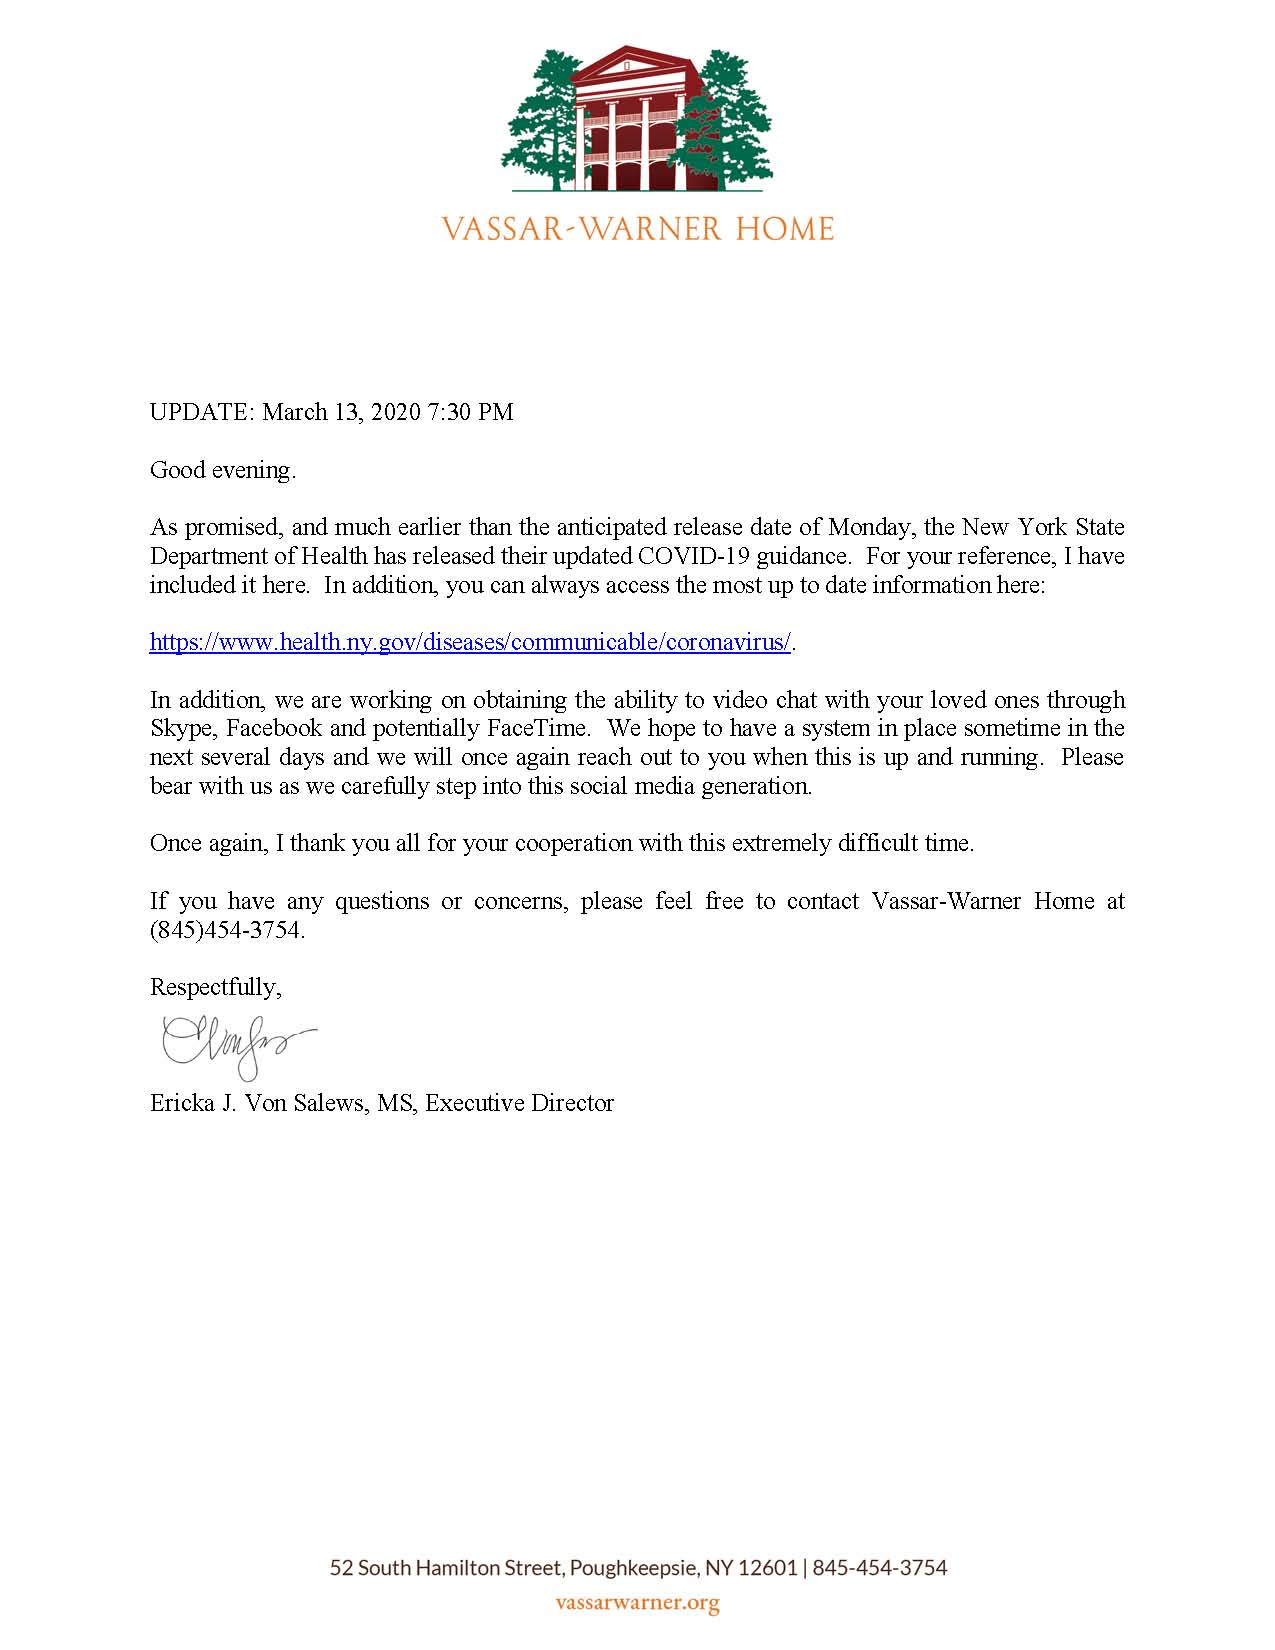 Update on COVID-19 for Vassar-Warner Home